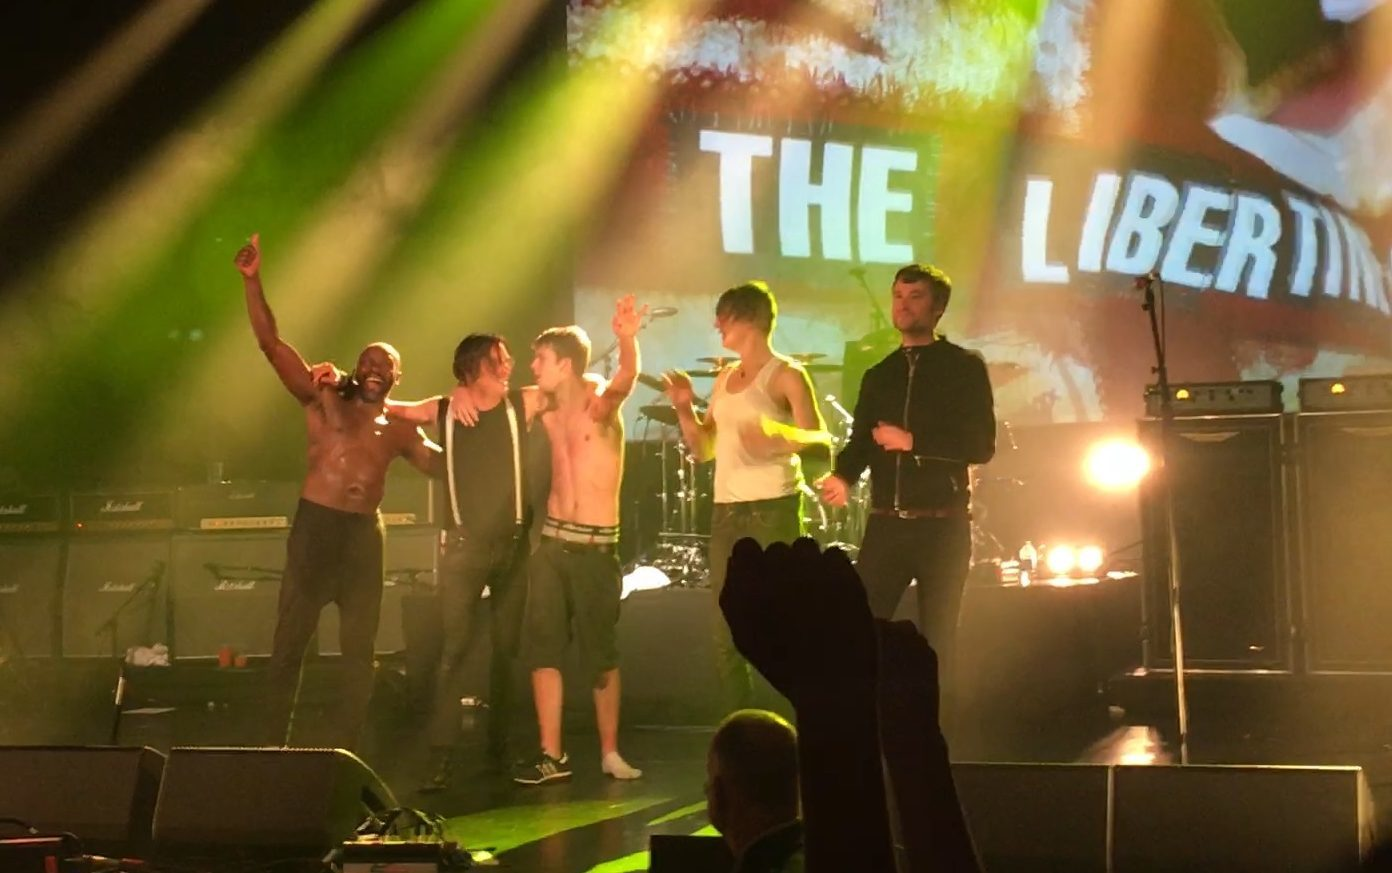 Libertines fan is welcomed on stage by the band in Dunfermline.